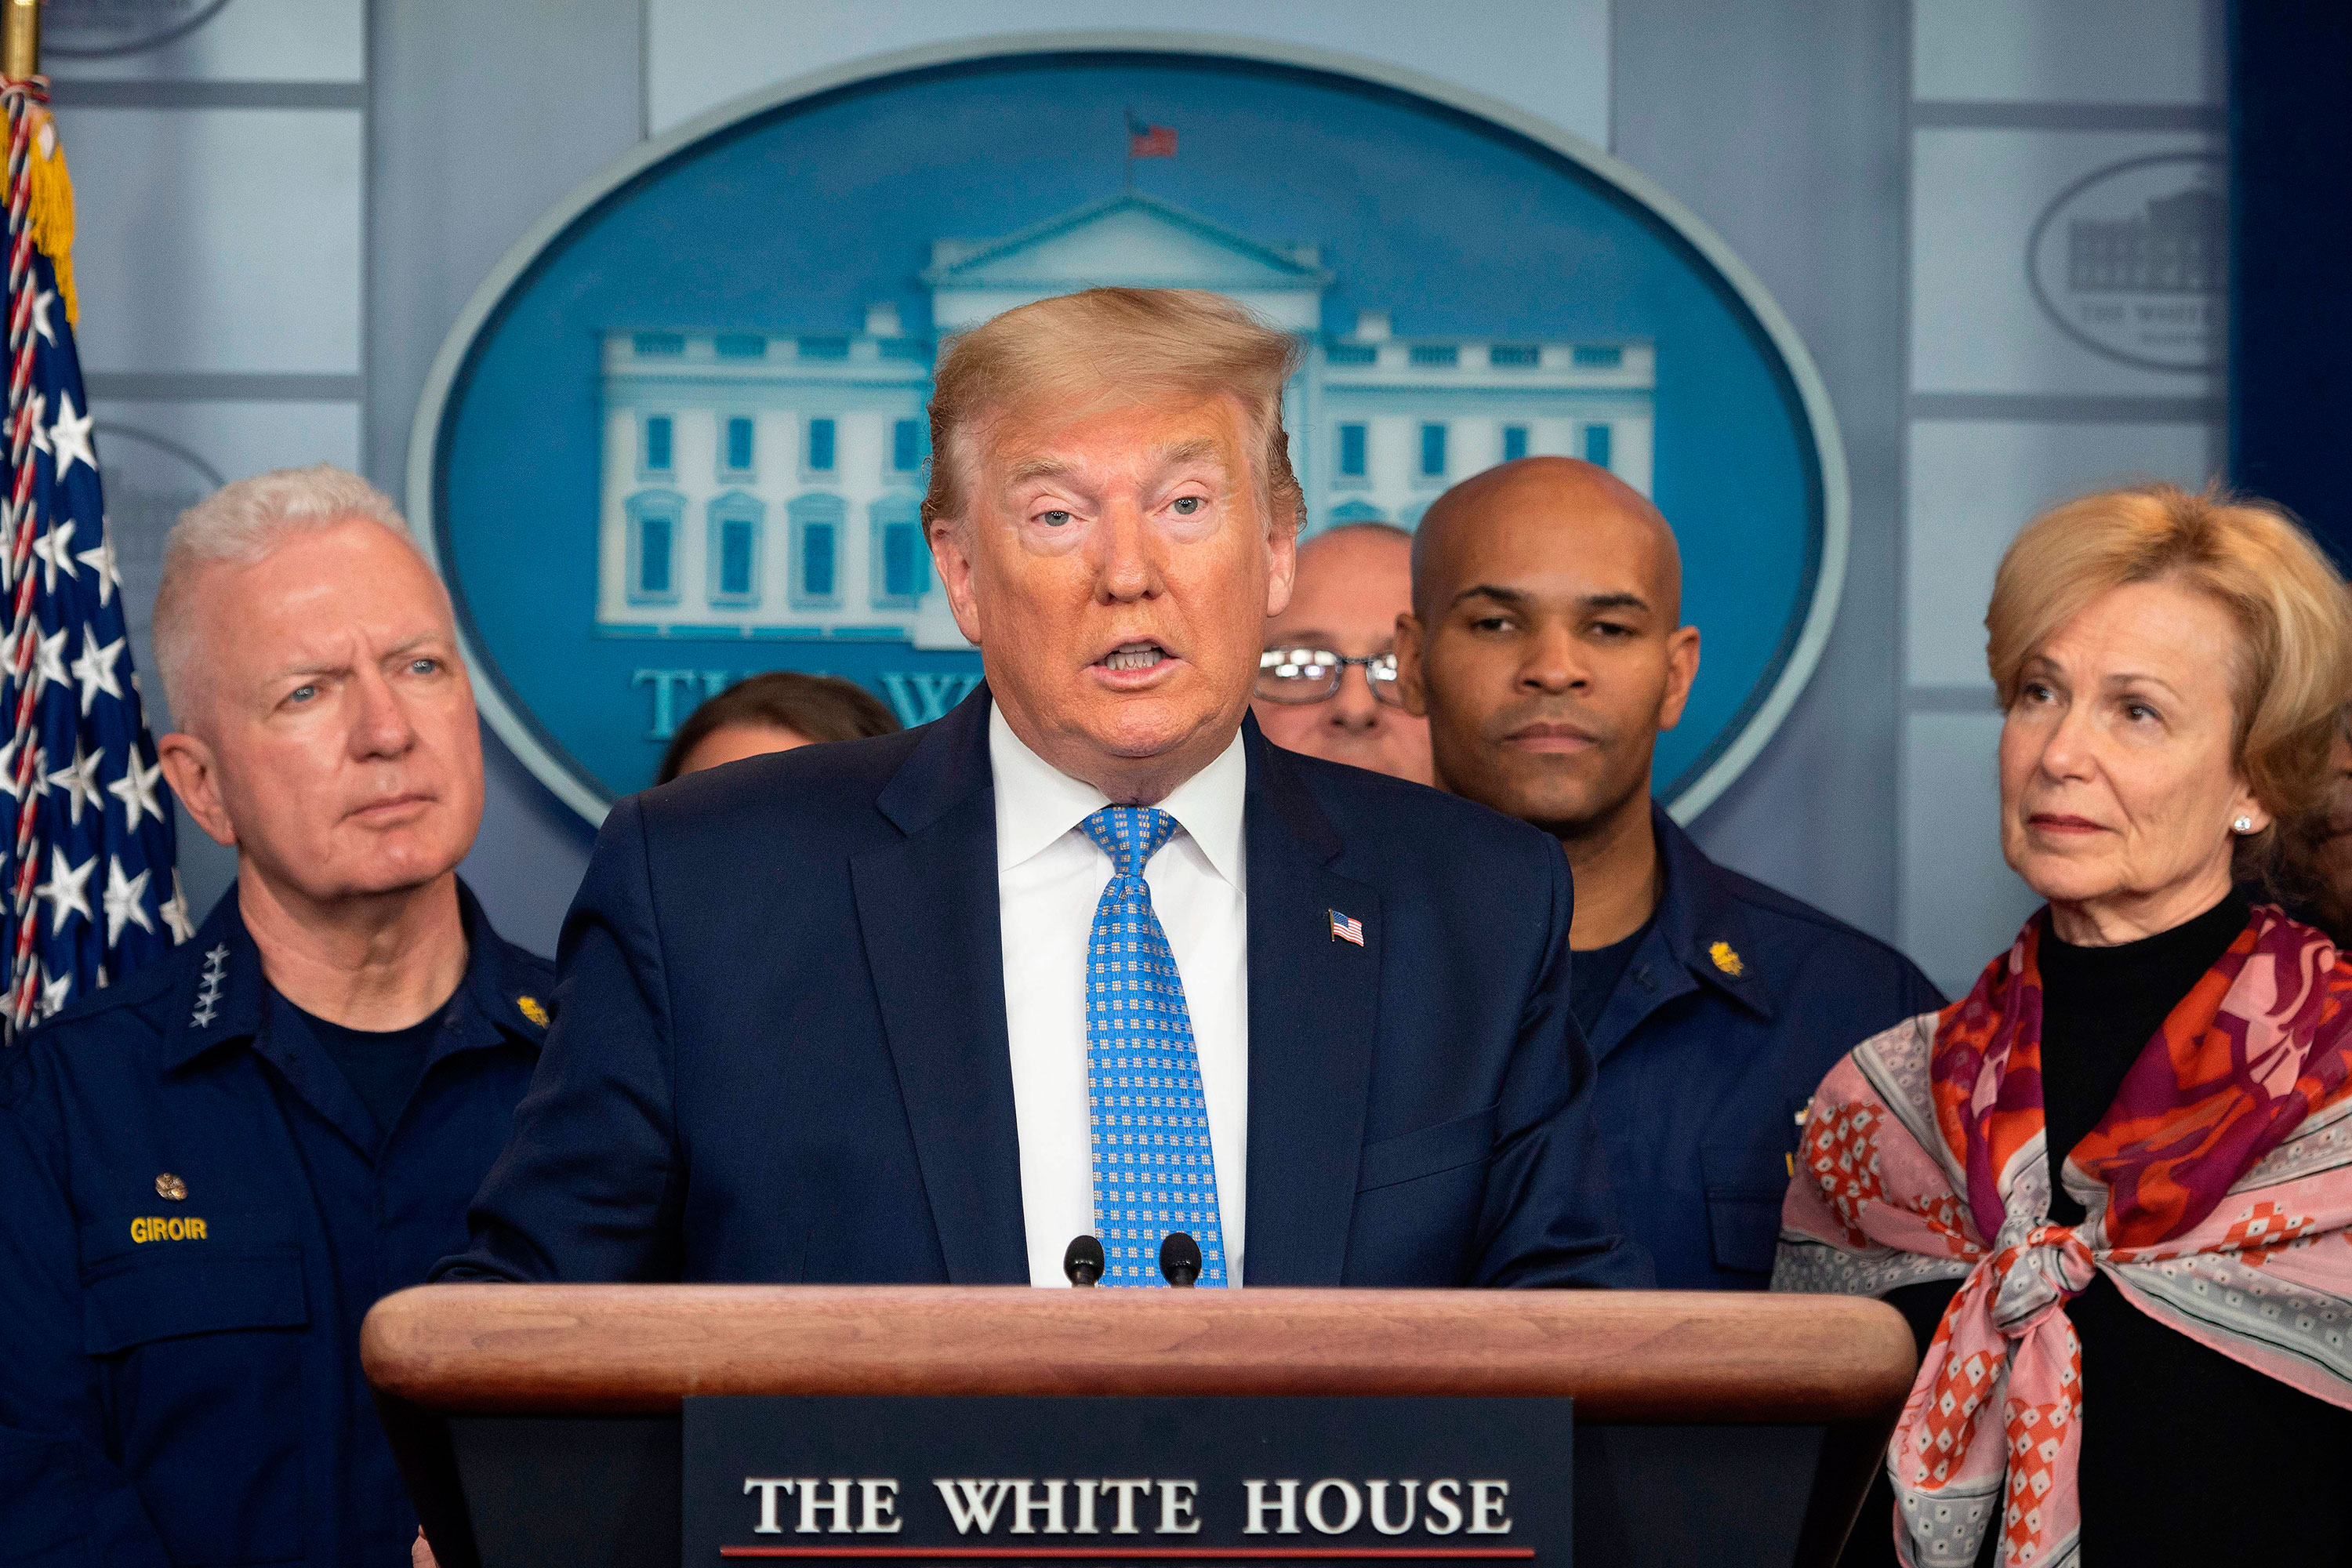 President Donald Trump speaks during a press conference at the White House on March 15.